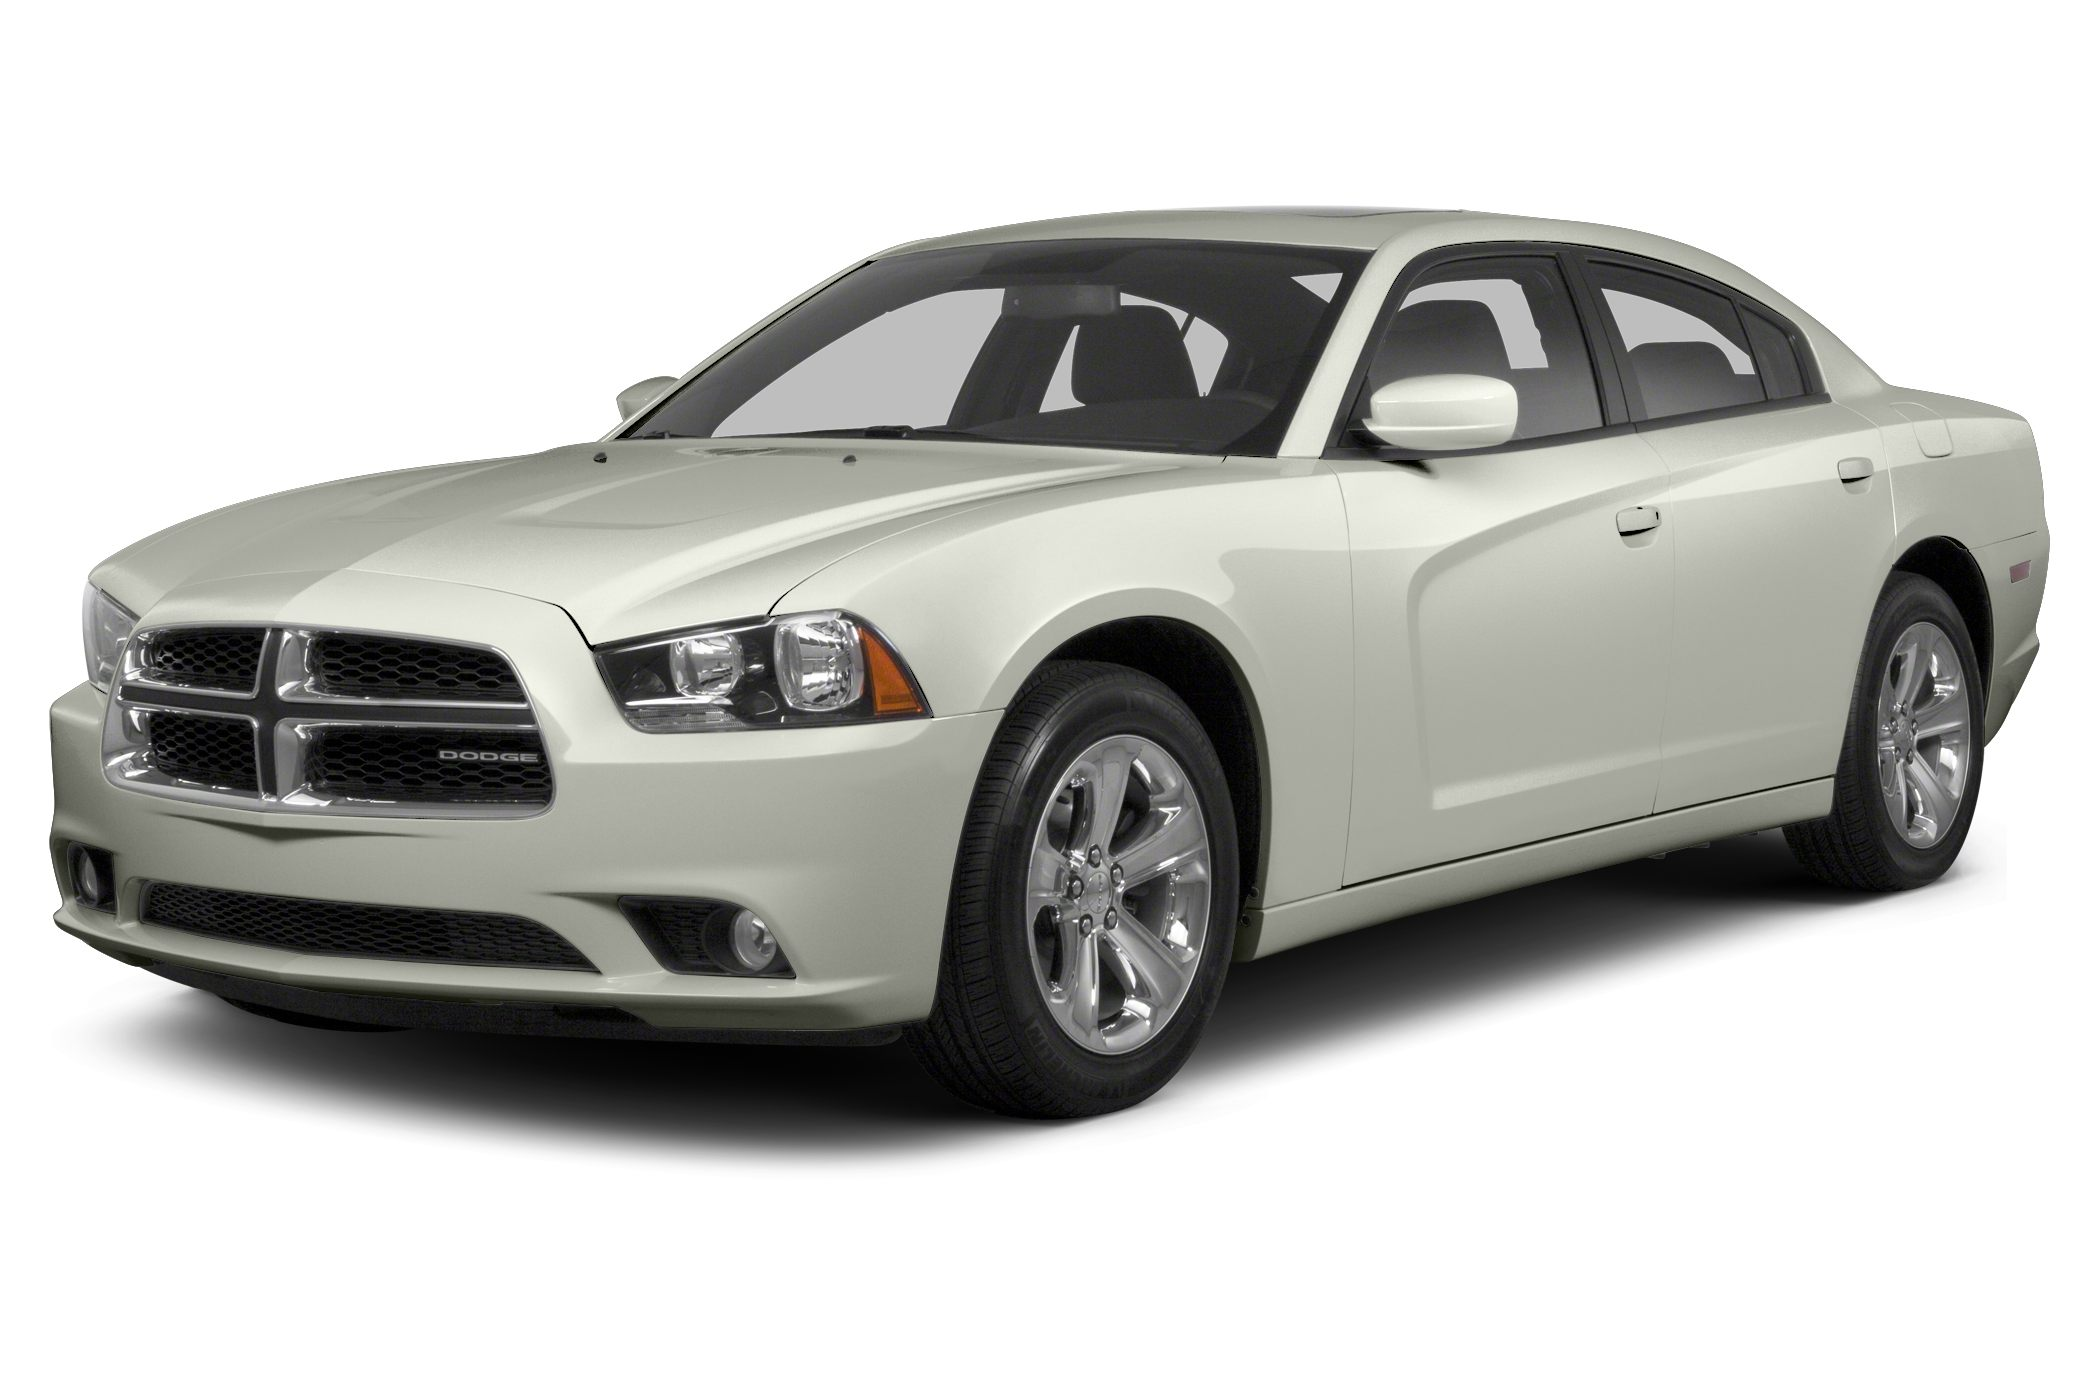 2013 Dodge Charger RT WARRANTY FOREVER included at NO EXTRA COST See our Excellent Reviews o